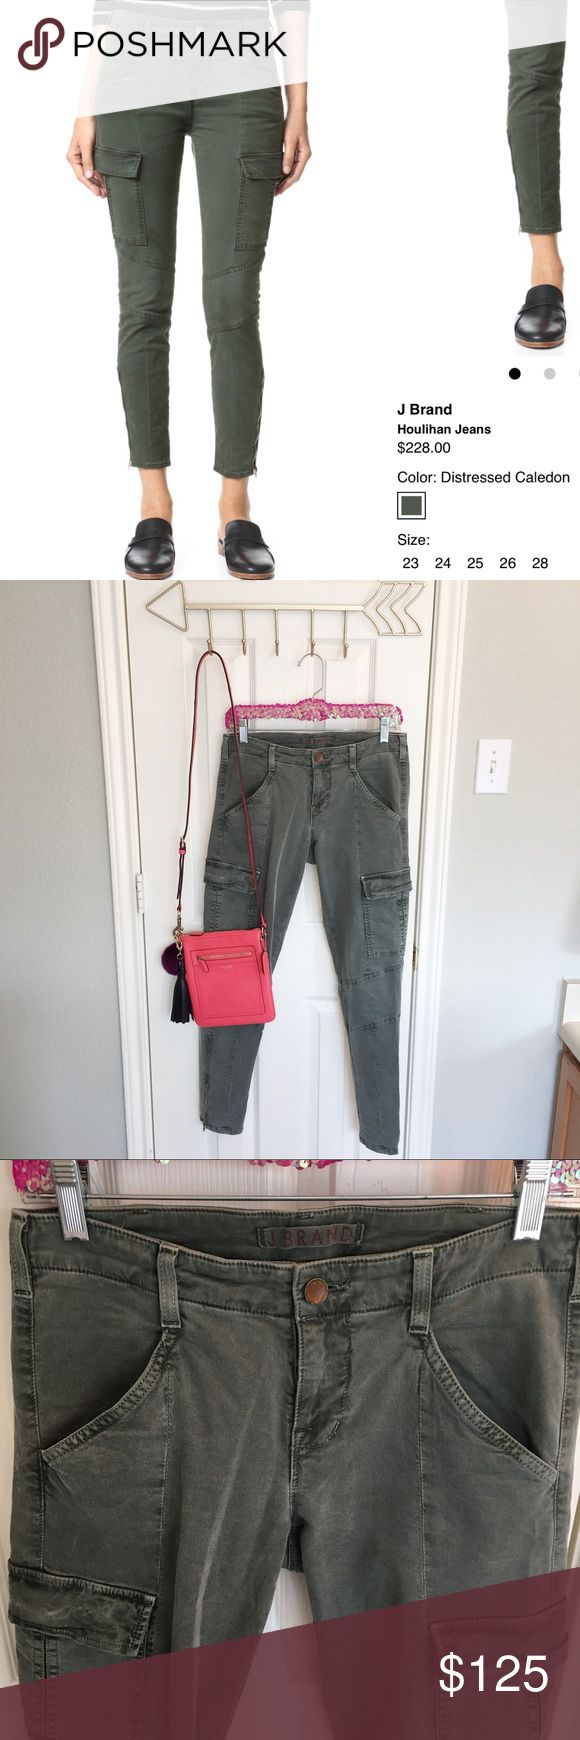 """J Brand Houlihan Green Khaki Jeans Size 27! Still on Shopbop website for $228! Color is """"Vin Olive"""". Gently worn with no rips, stains, pulls or pills. J Brand Jeans Skinny"""